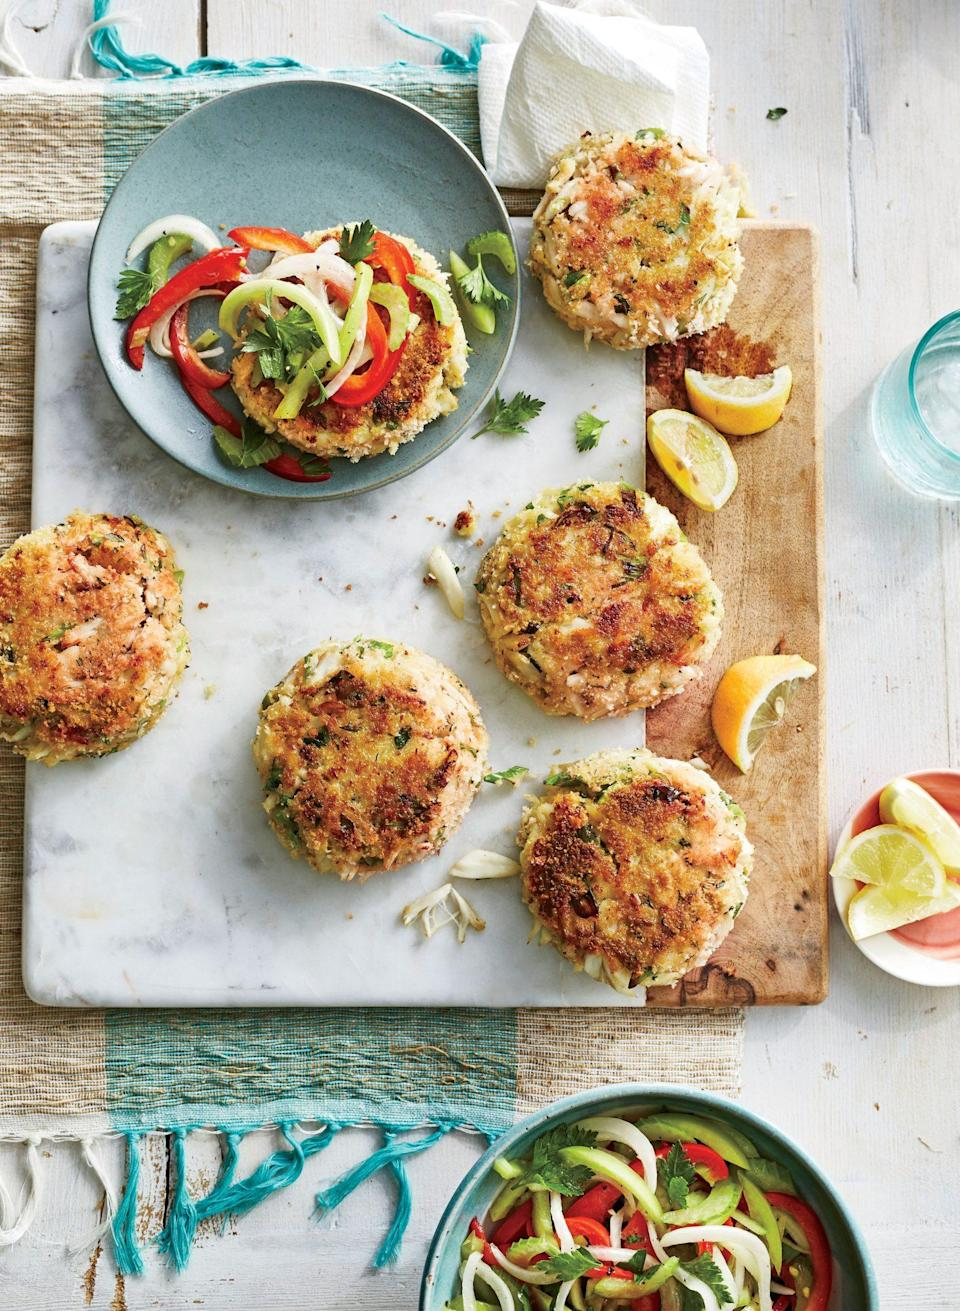 """<p><strong>Recipe:</strong> <a href=""""https://www.southernliving.com/recipes/best-ever-crab-cakes-recipe"""" rel=""""nofollow noopener"""" target=""""_blank"""" data-ylk=""""slk:Best-Ever Crab Cakes with Green Tomato Slaw"""" class=""""link rapid-noclick-resp"""">Best-Ever Crab Cakes with Green Tomato Slaw</a></p> <p>These really are the Best-Ever Crab Cakes. Crispy and topped with a tangy slaw, they're a great dish to have on hand for your next gathering. Top them with a sunny-side-up egg for a breakfast that's over the top. </p>"""